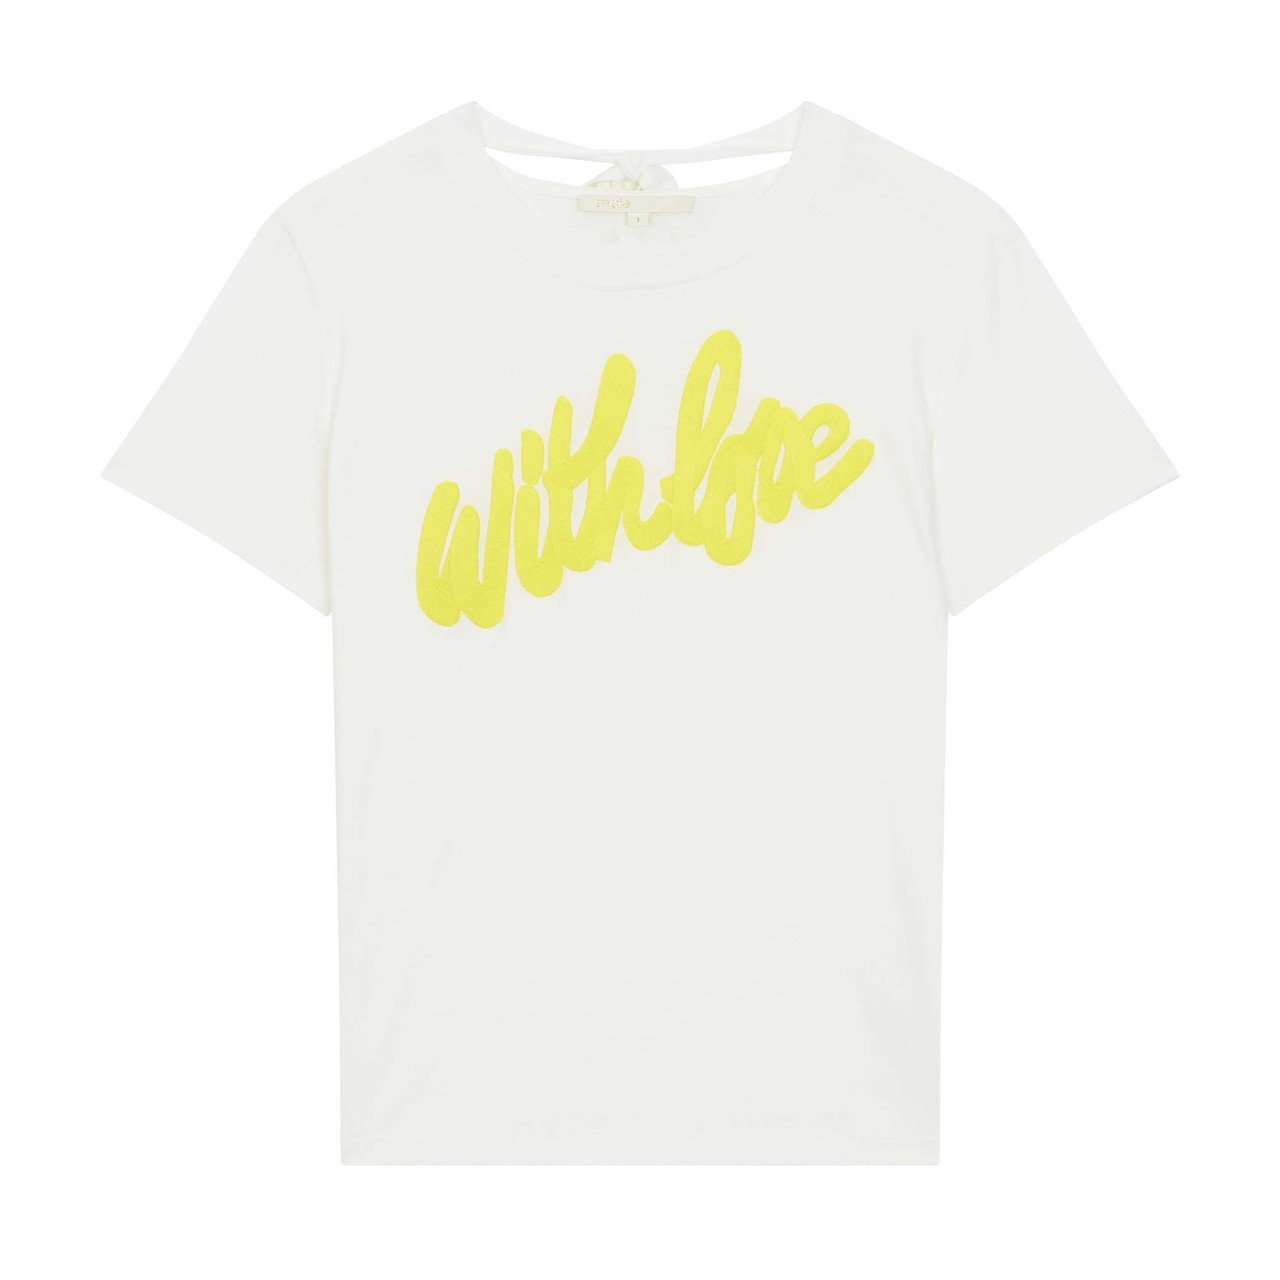 Tee-Shirt With Embroidered Slogan - White